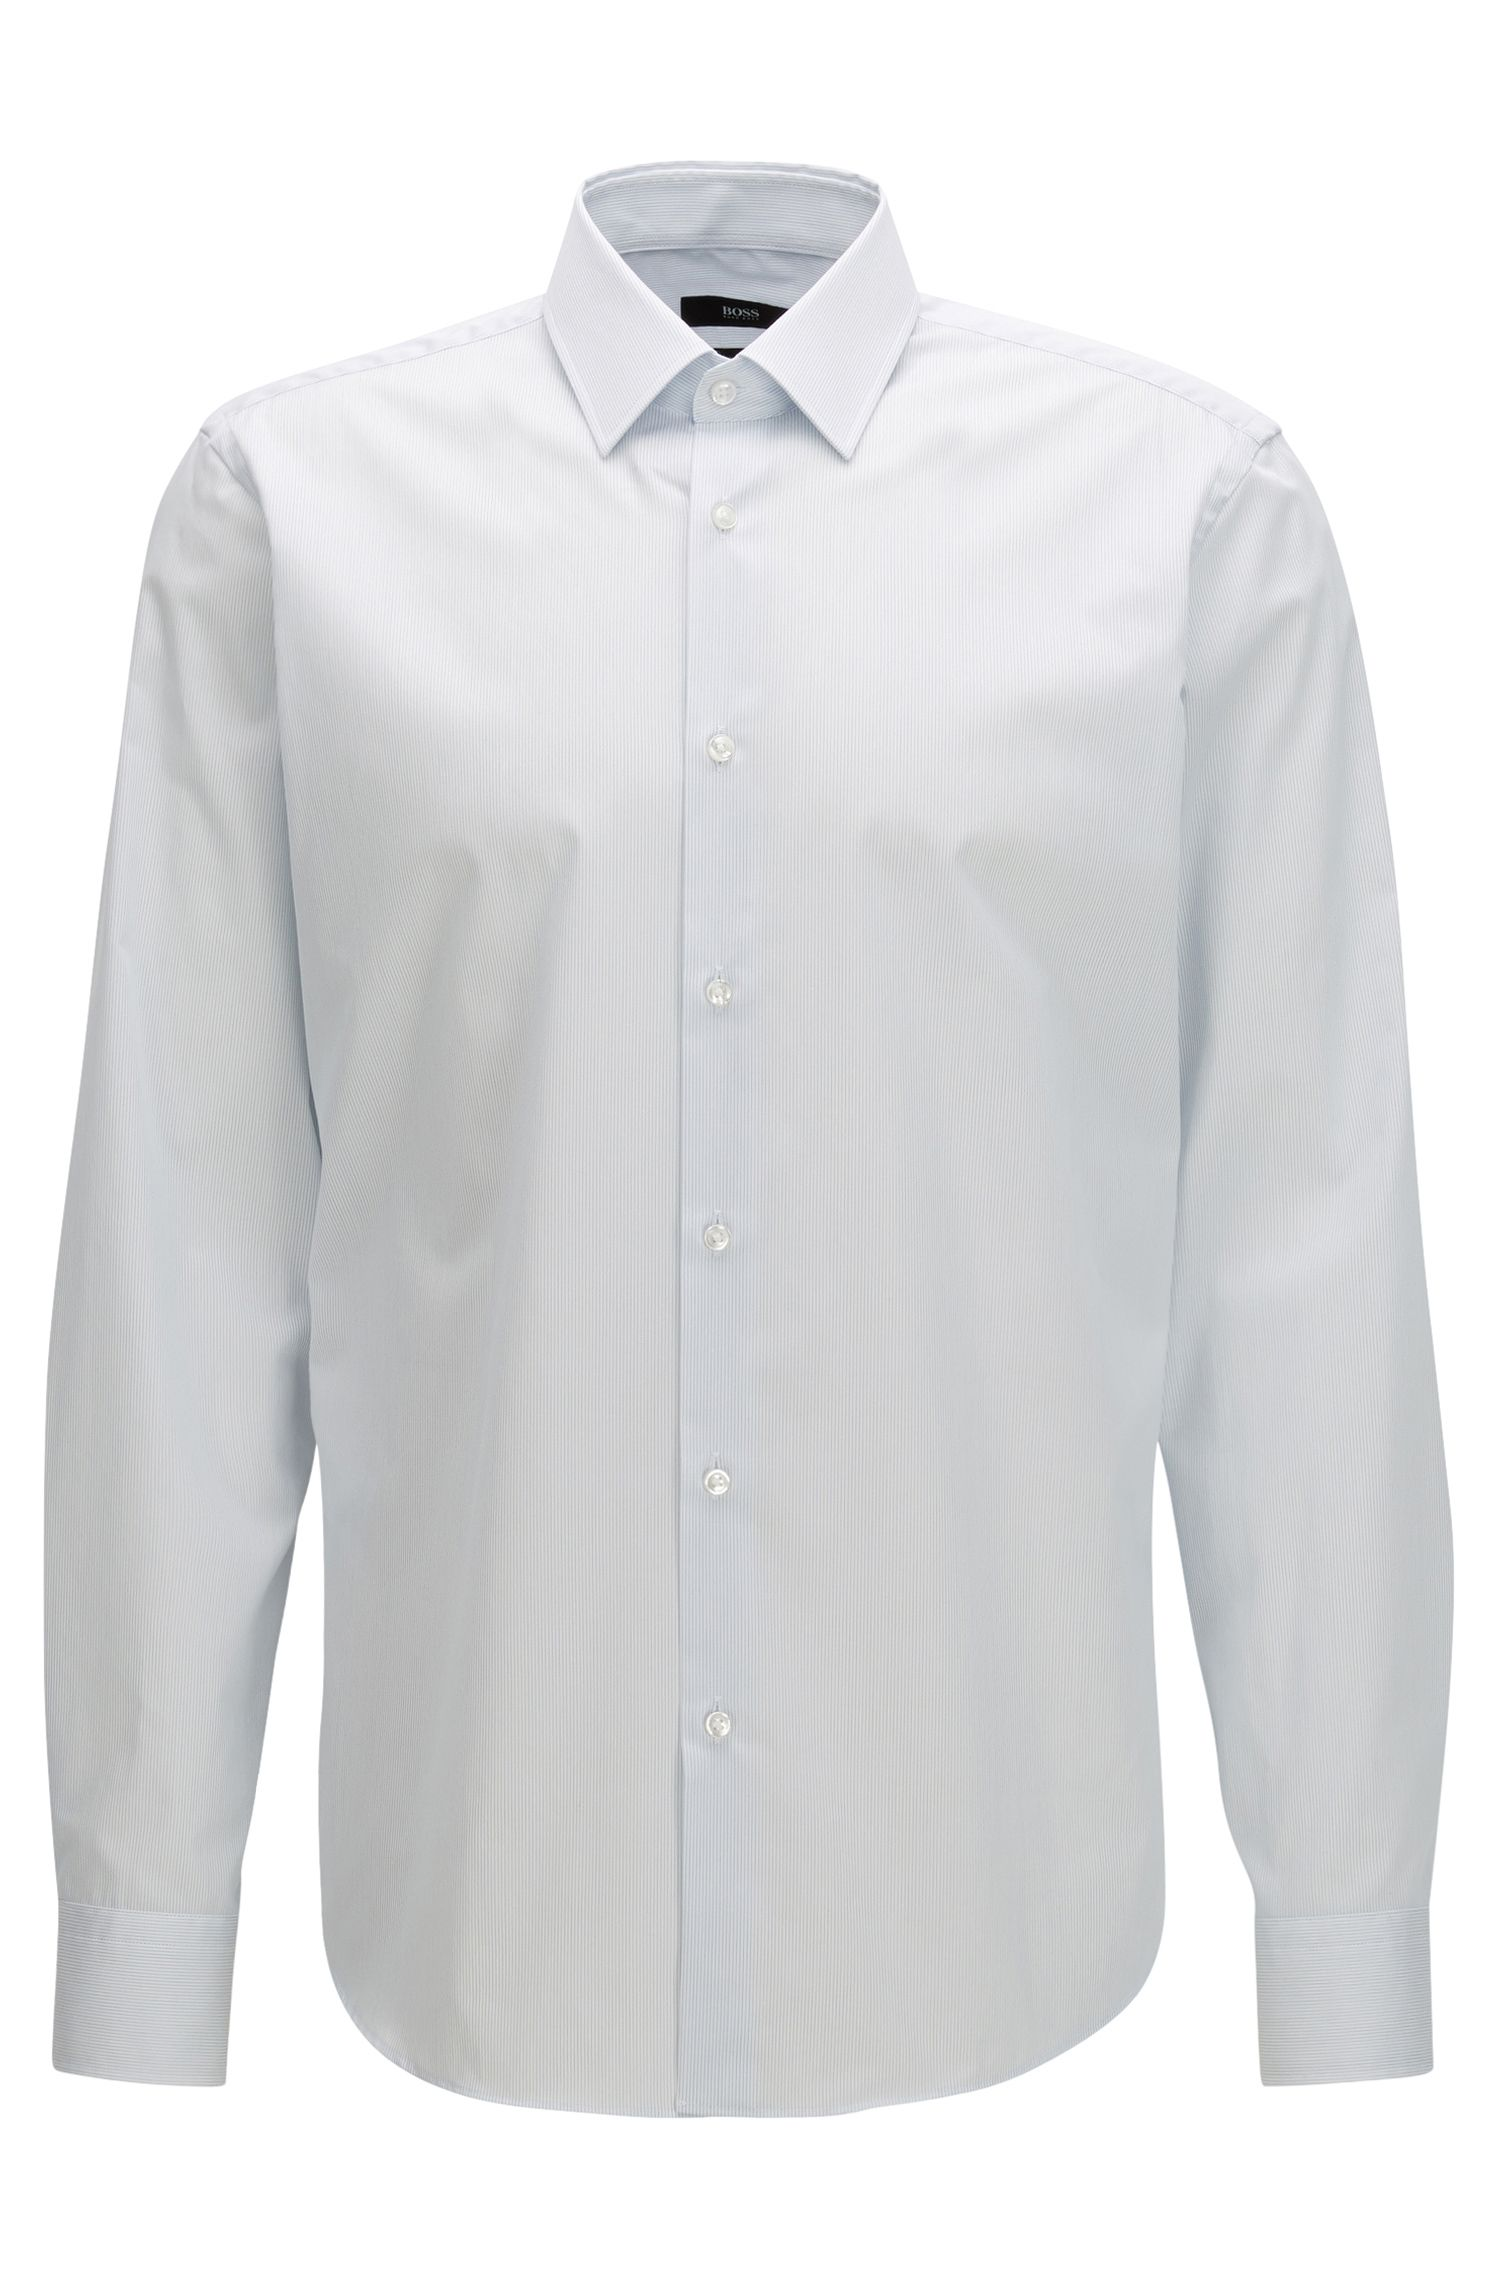 Regular-fit shirt in pure striped cotton